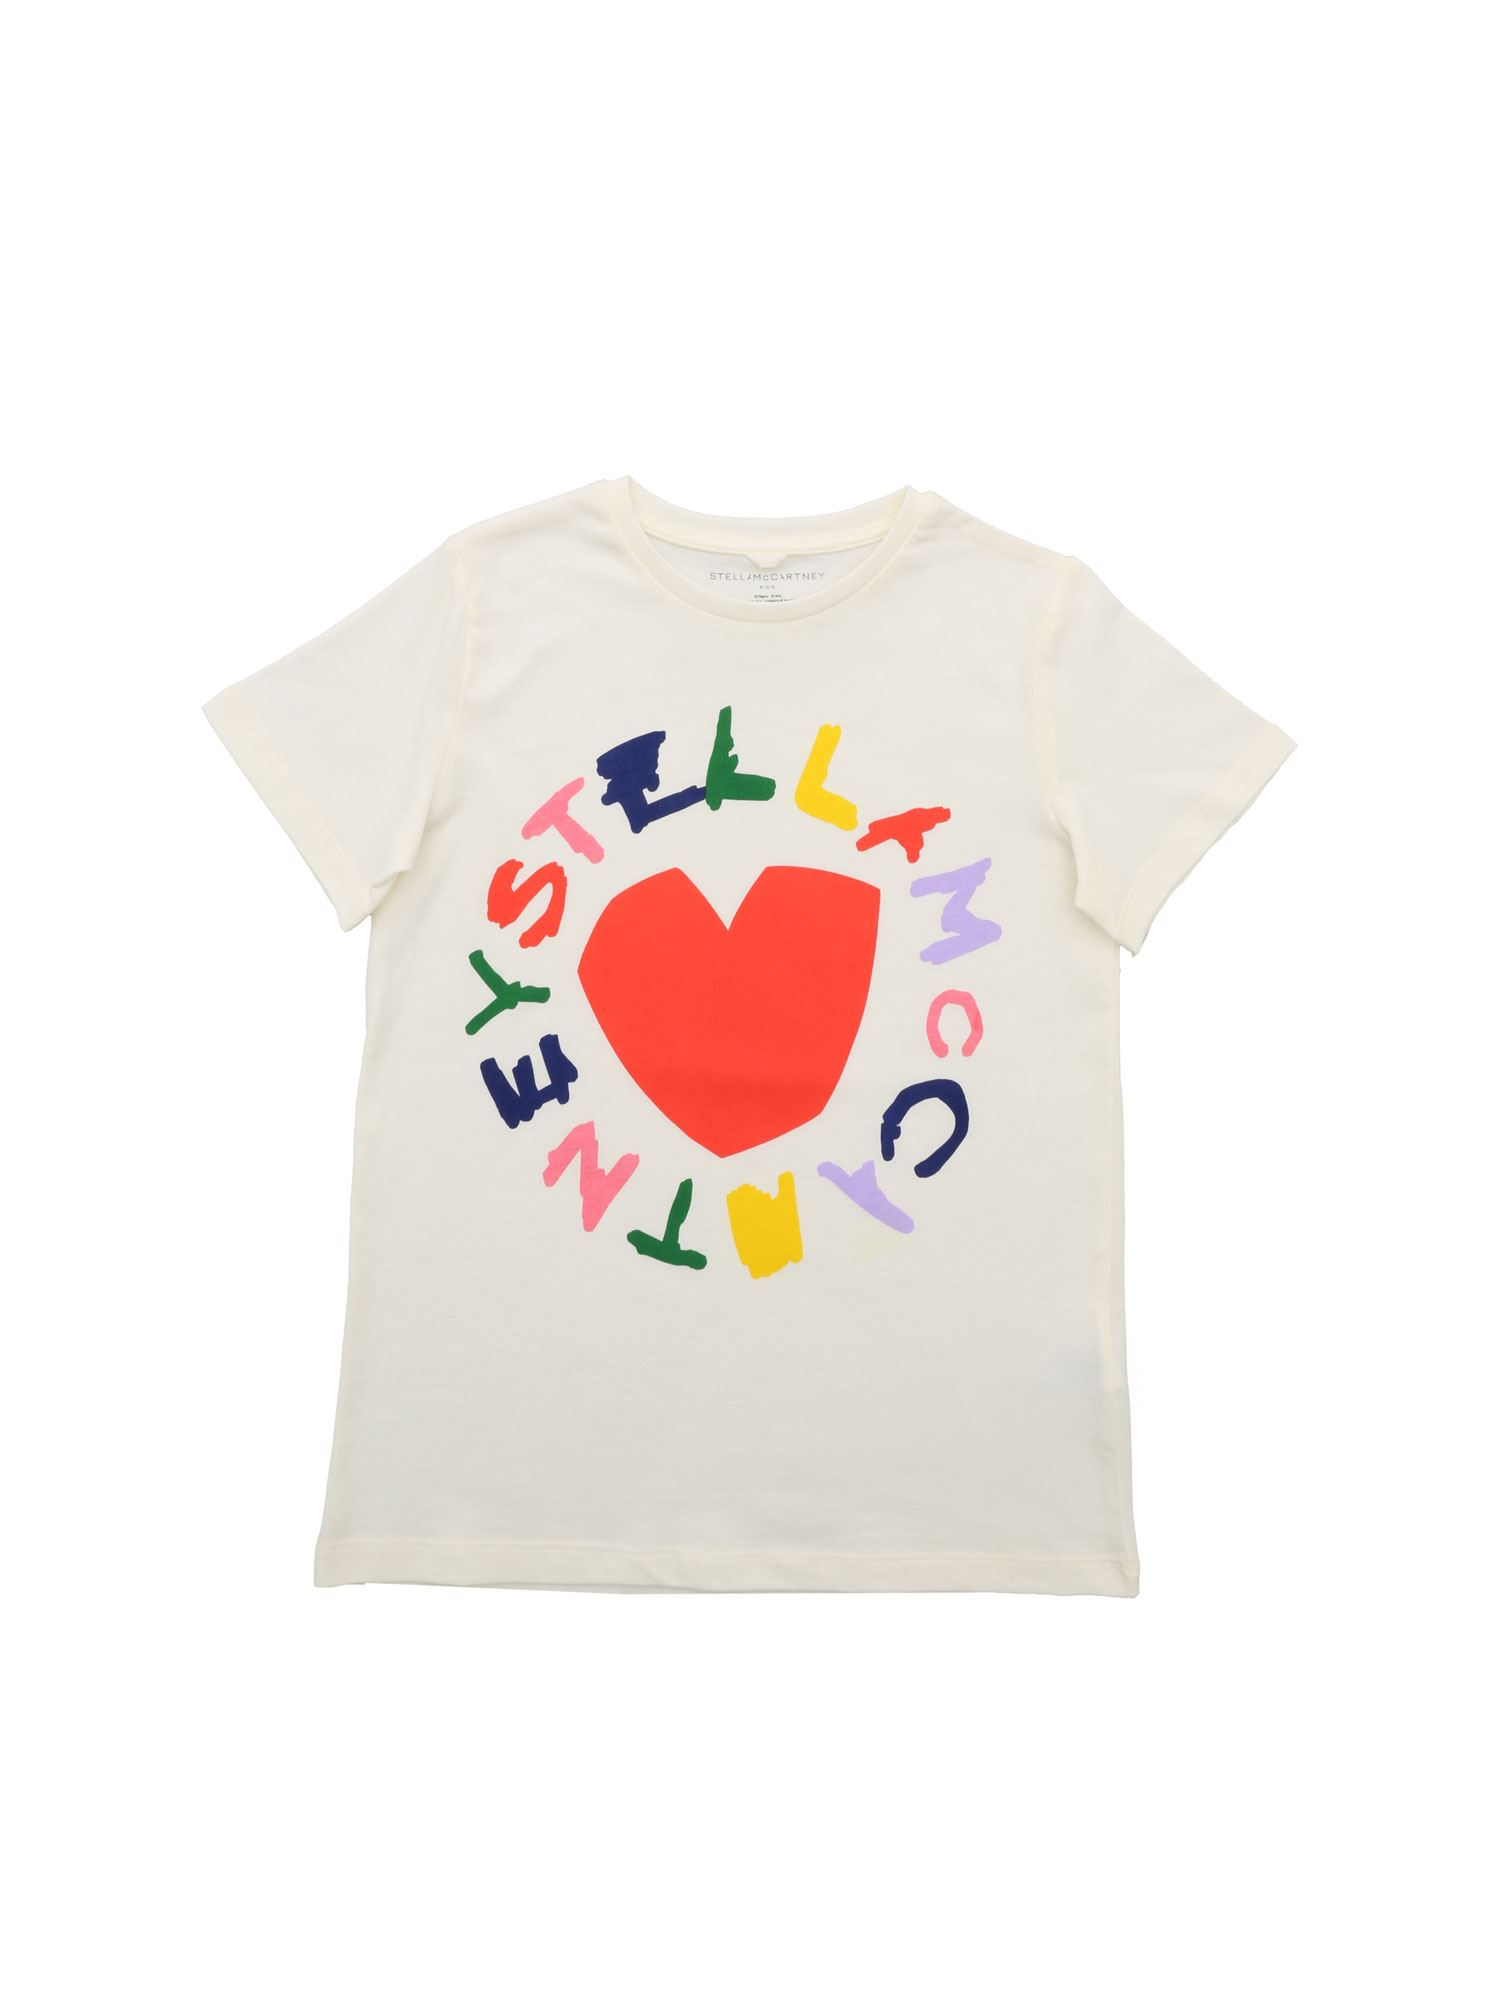 Stella Mccartney Kids' Heart And Logo T-shirt In Cream Color